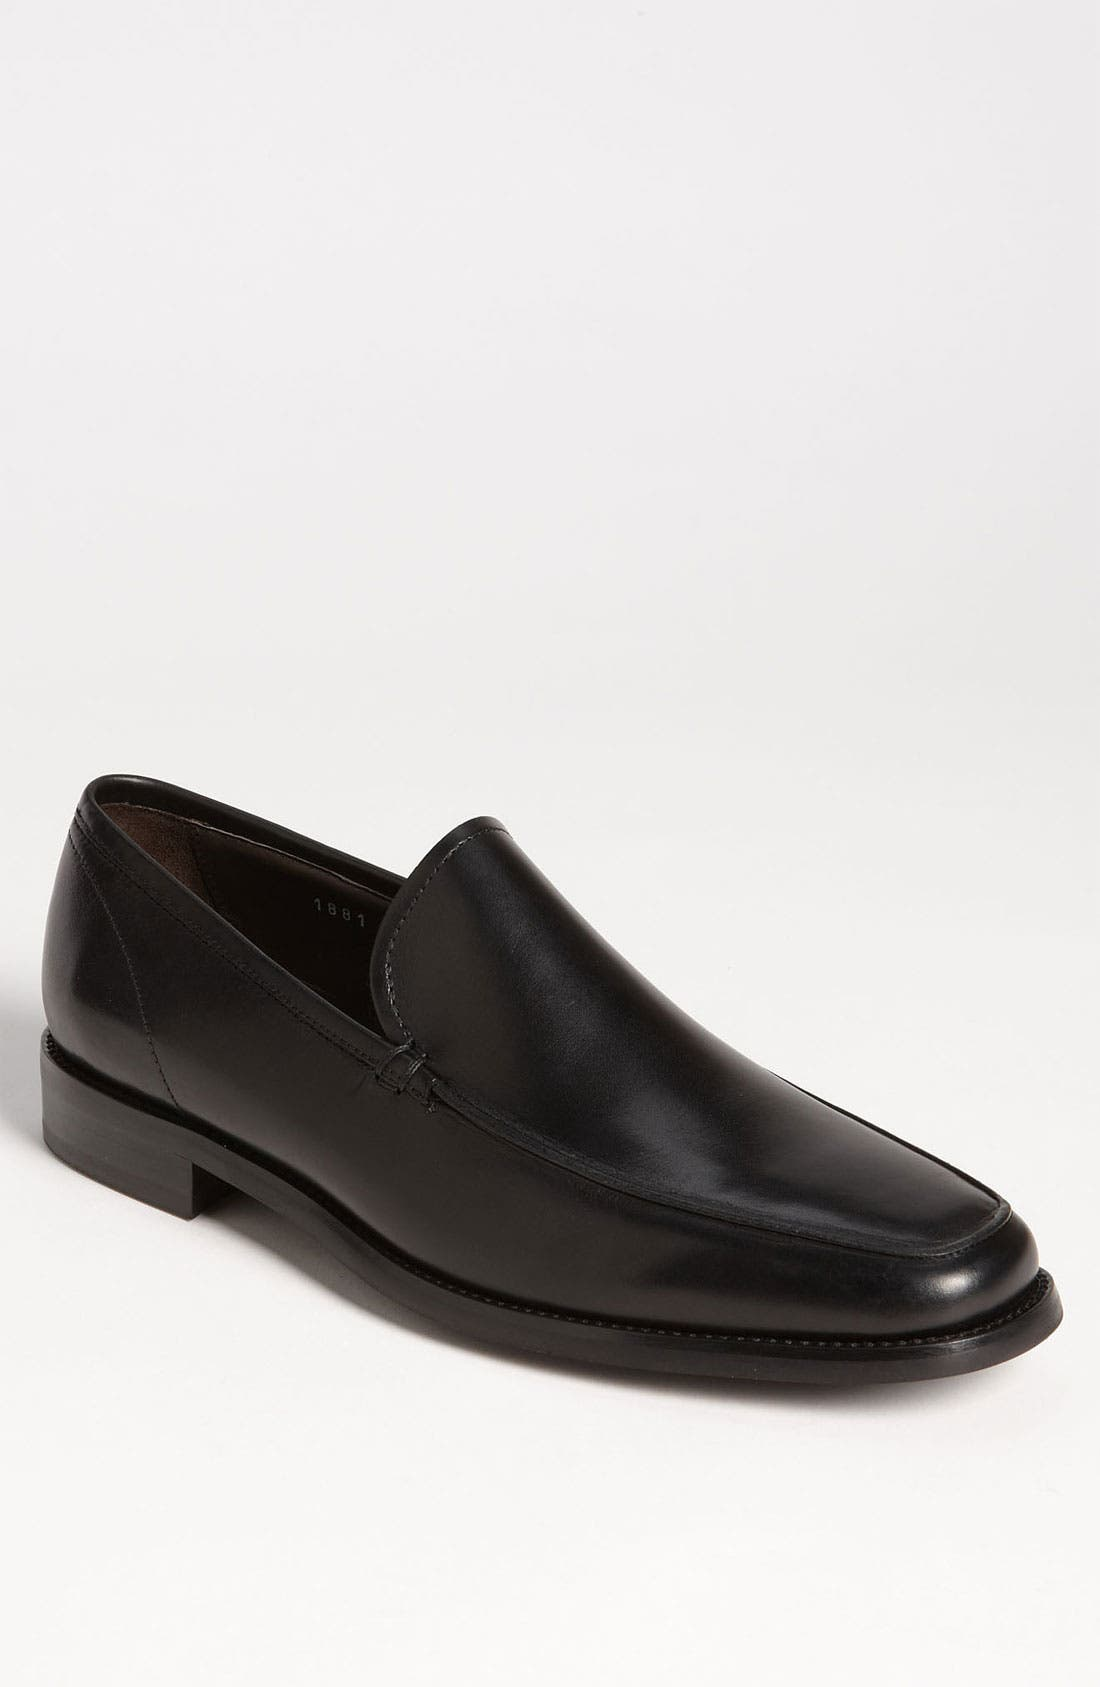 Alternate Image 1 Selected - To Boot New York 'Franklin' Moc-Toe Loafer